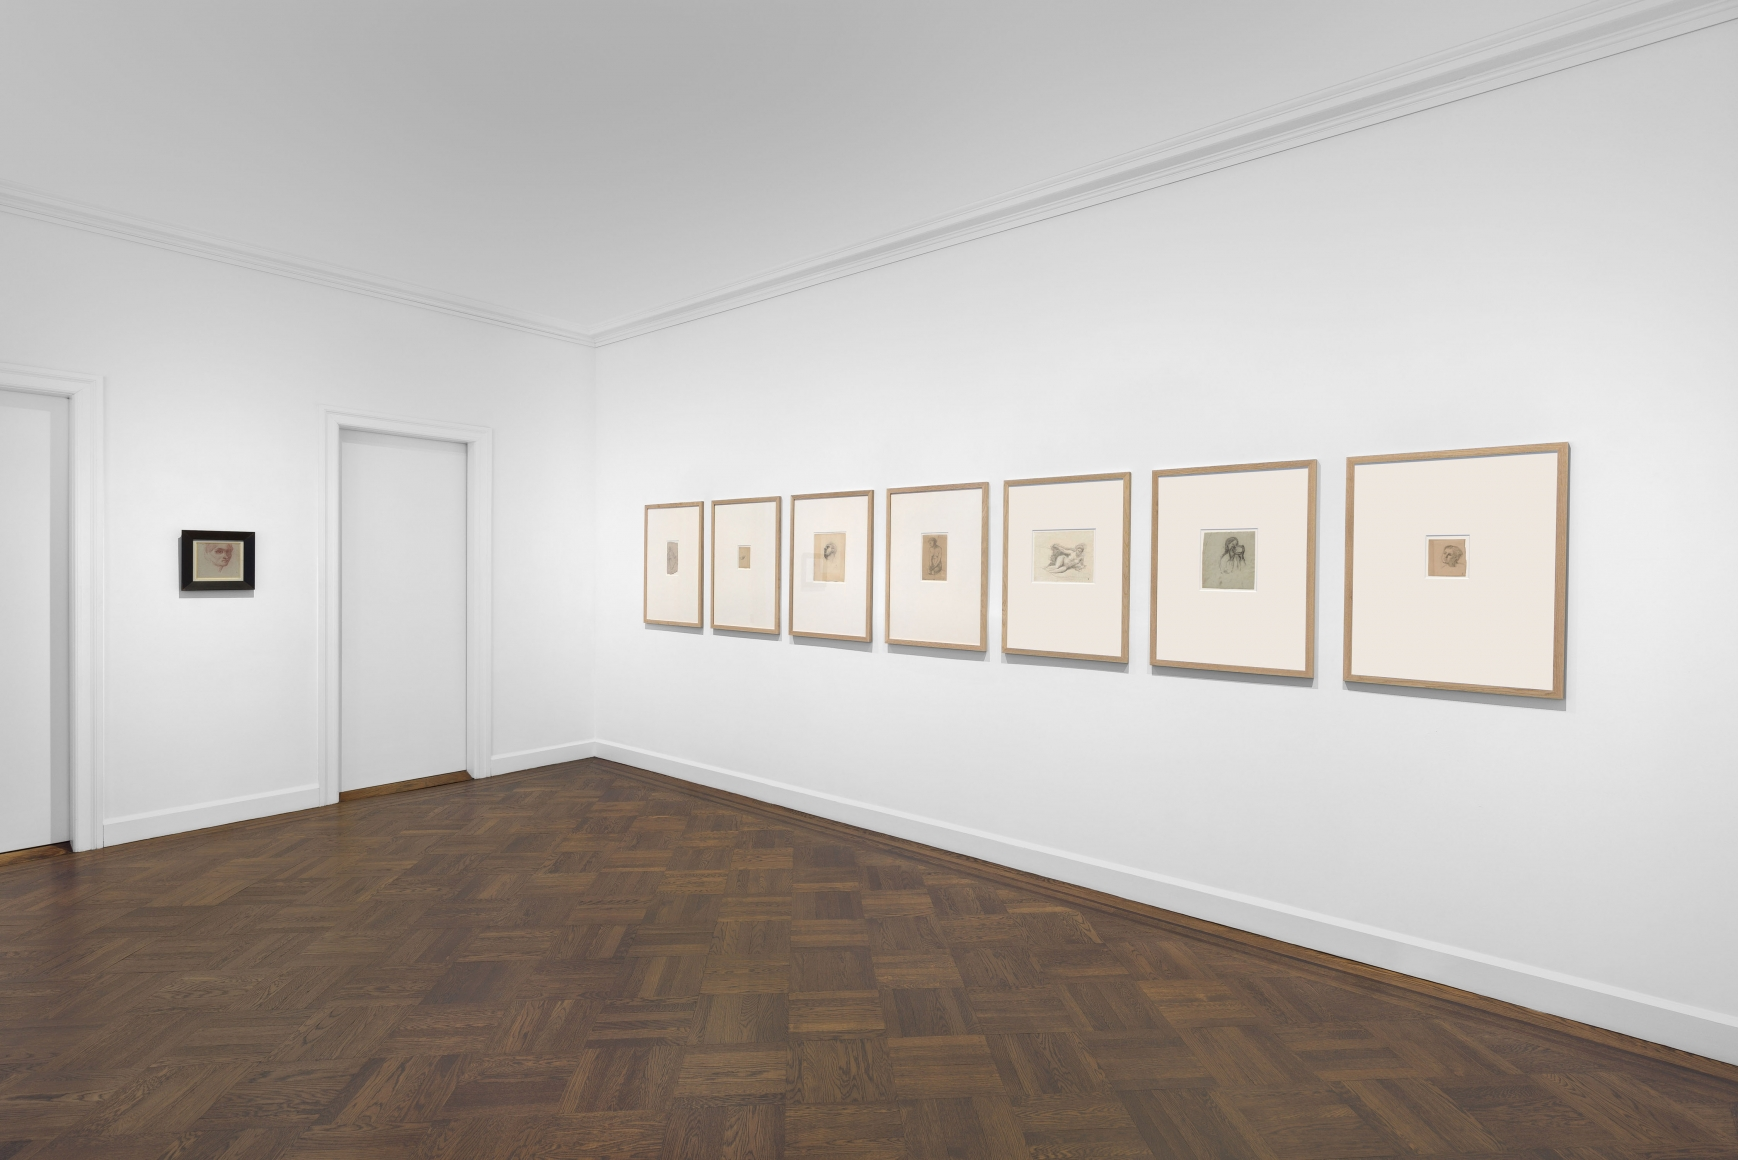 PIERRE PUVIS DE CHAVANNES, Works on Paper and Paintings, New York, 2018, Installation Image 16